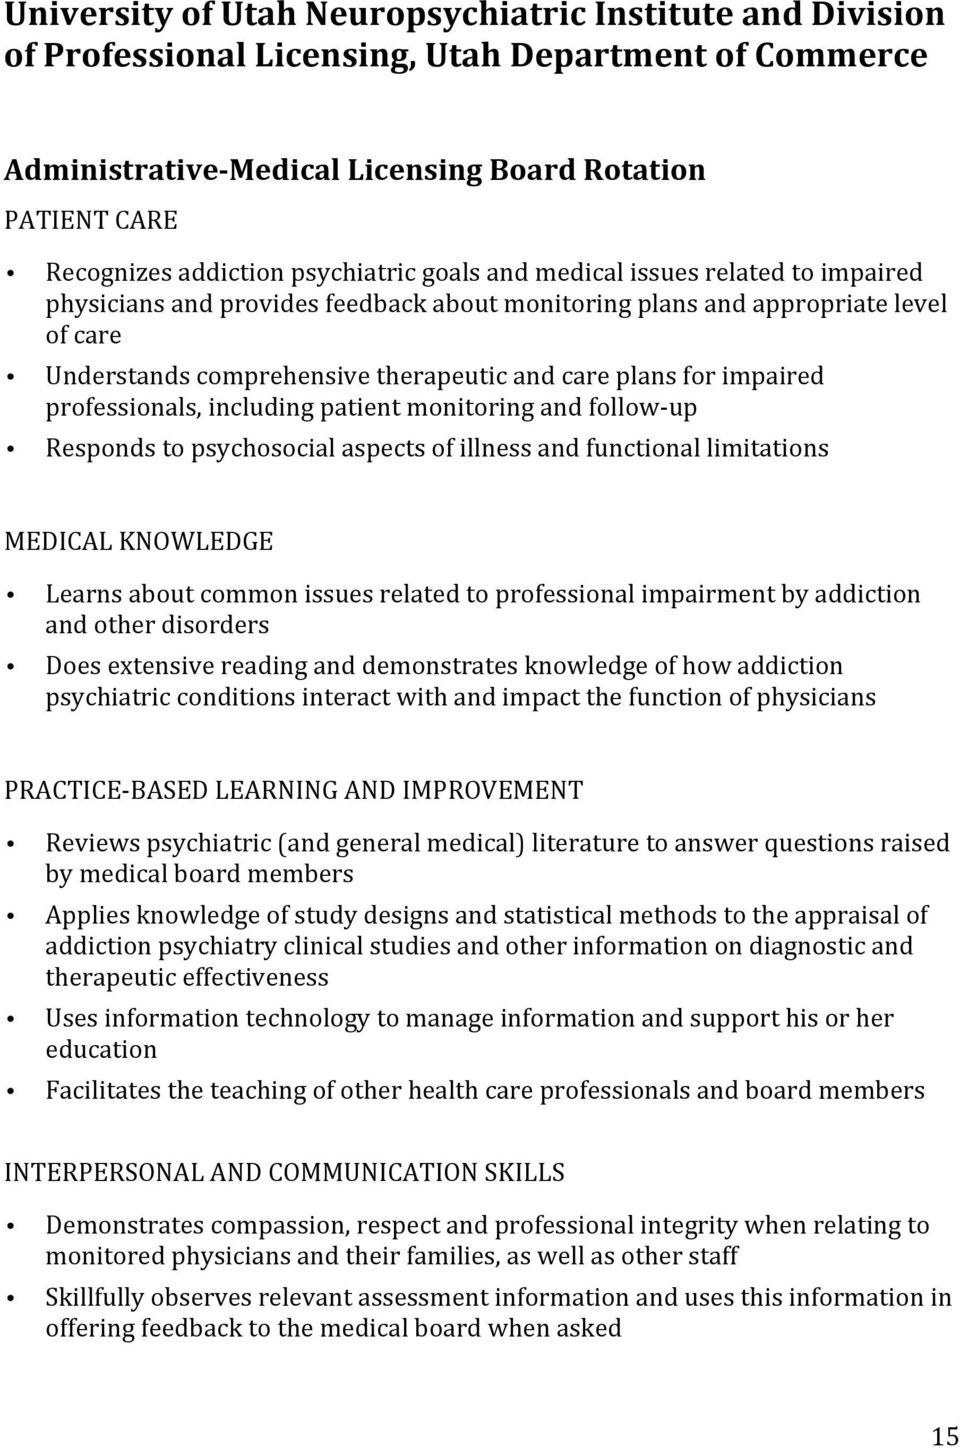 impaired professionals, including patient monitoring and follow- up Responds to psychosocial aspects of illness and functional limitations MEDICAL KNOWLEDGE Learns about common issues related to